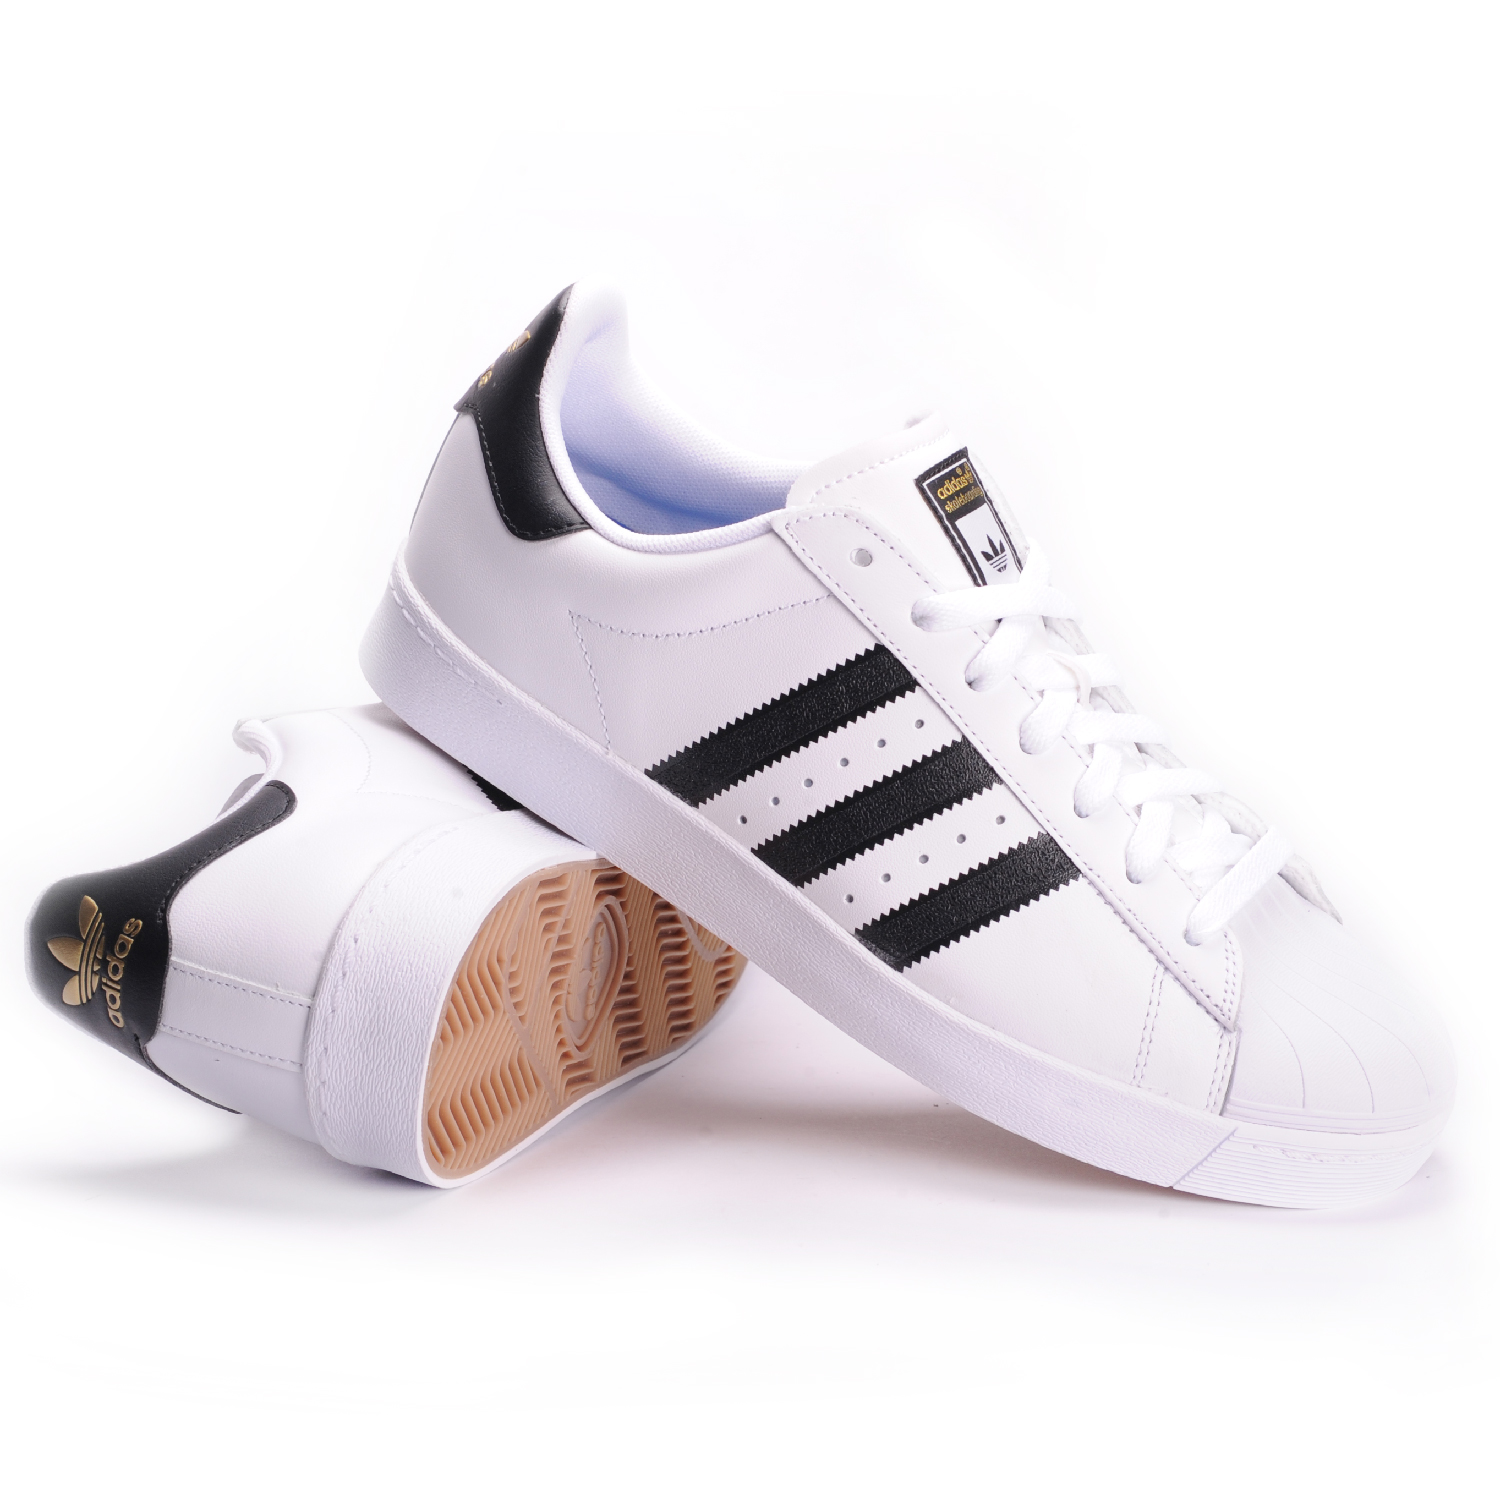 Archive Cheap Adidas Superstar Vulc (Alltimers) Sneakerhead aq8704